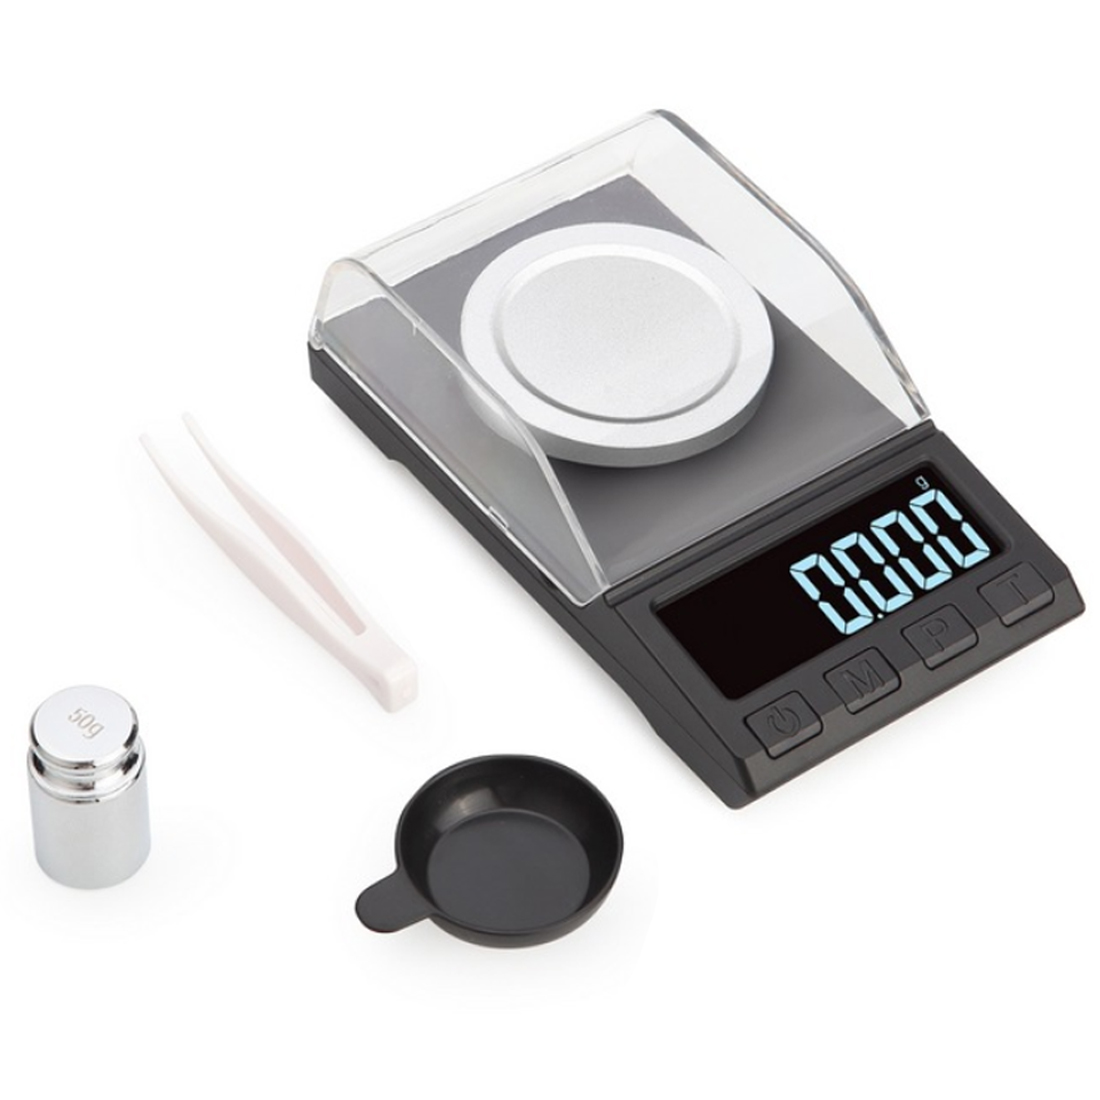 Electronic Jewelry Scales 0.001g 100g/50g/20g/10g LCD Digital Scale Medicinal Herbs Portable Lab Weight Milligram Scale